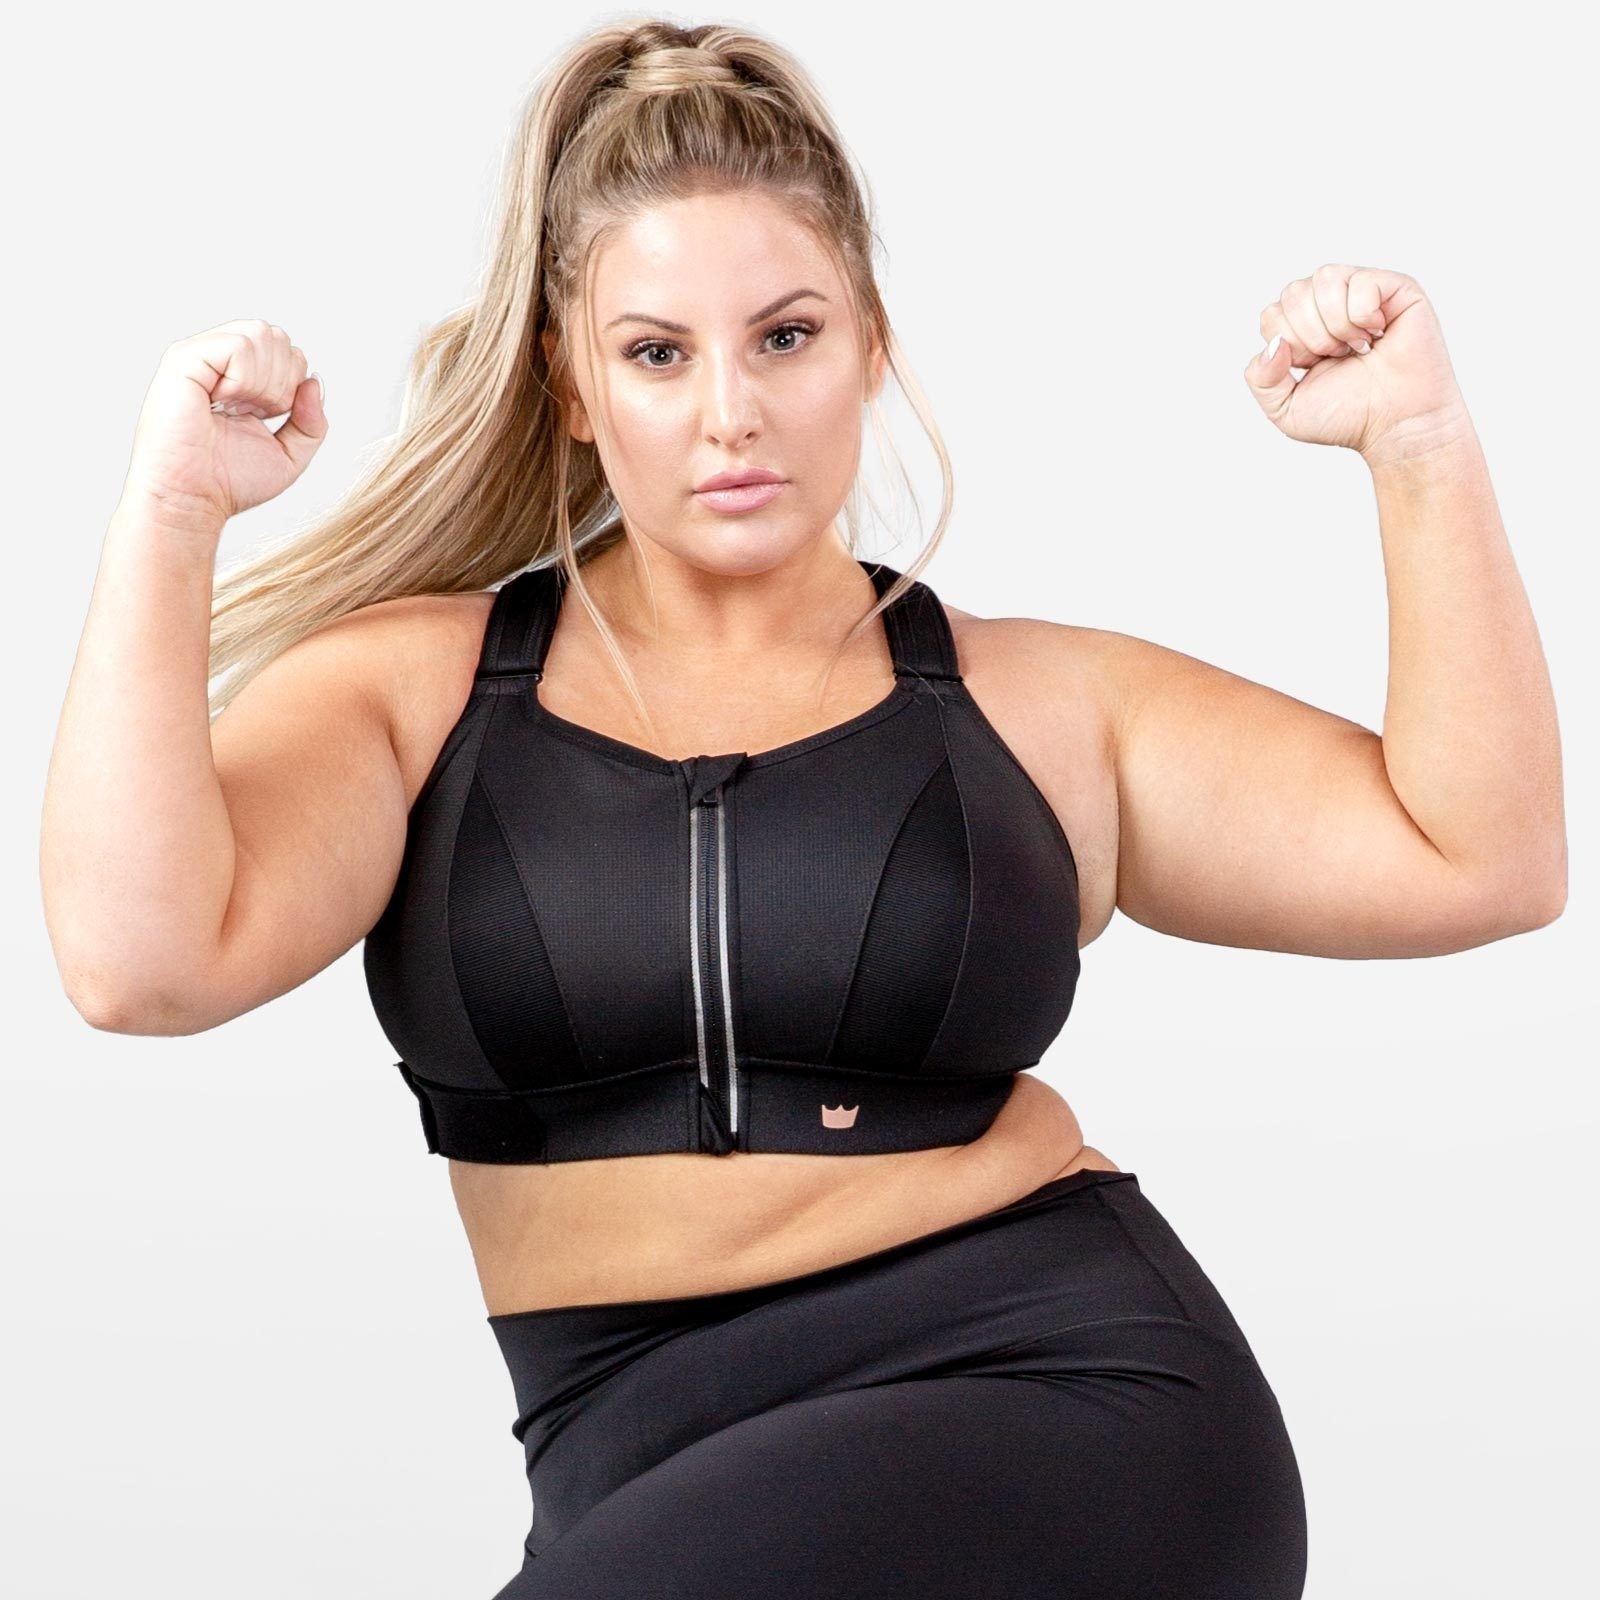 Model wears a black Shefit Ultimate Sports Bra with black leggings